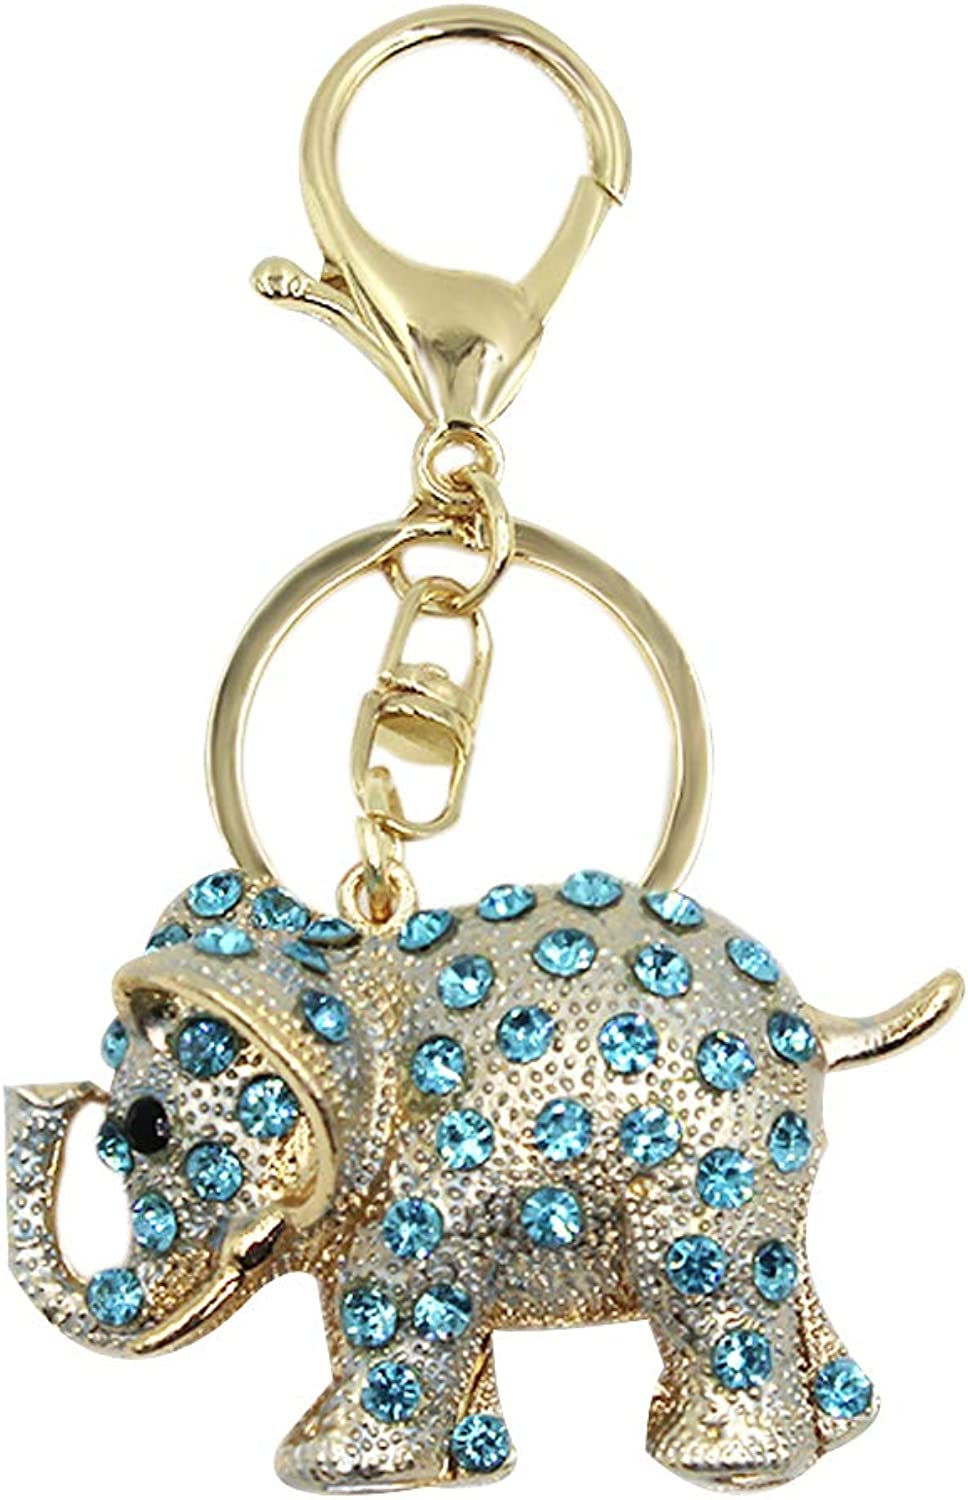 Aibearty Crystal Rhinestone Elephant Keychain gold Ring Bag Charm Pendent with Gift Bag